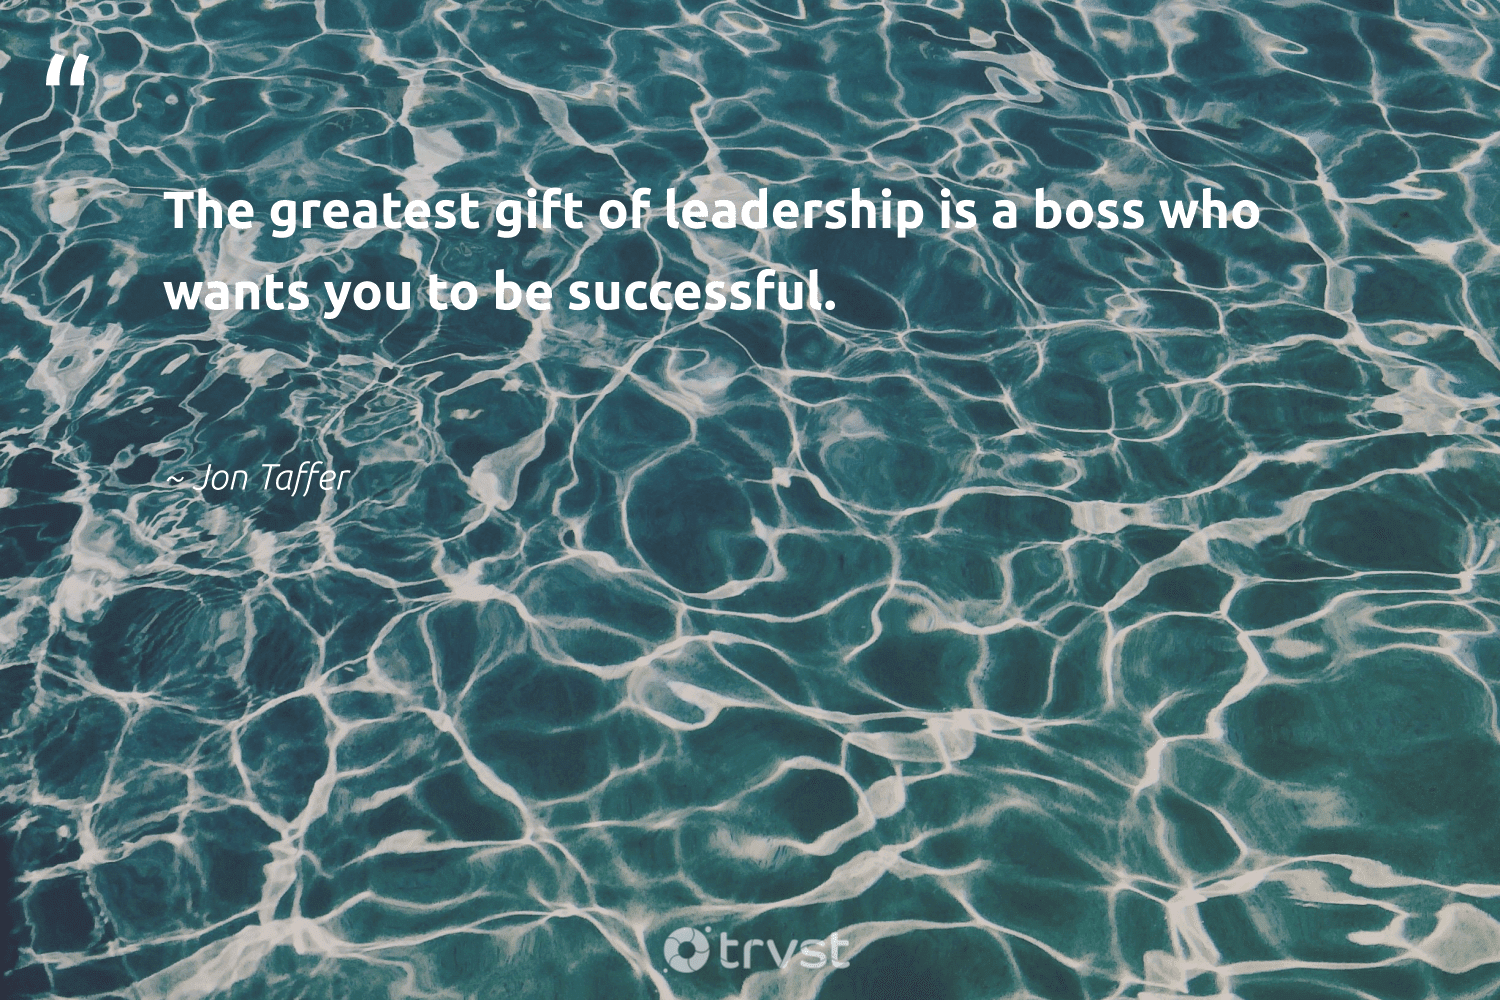 """The greatest gift of leadership is a boss who wants you to be successful.""  - Jon Taffer #trvst #quotes #leadership #leadershipskills #nevergiveup #softskills #bethechange #leadershipdevelopment #futureofwork #begreat #thinkgreen #leadershipqualities"